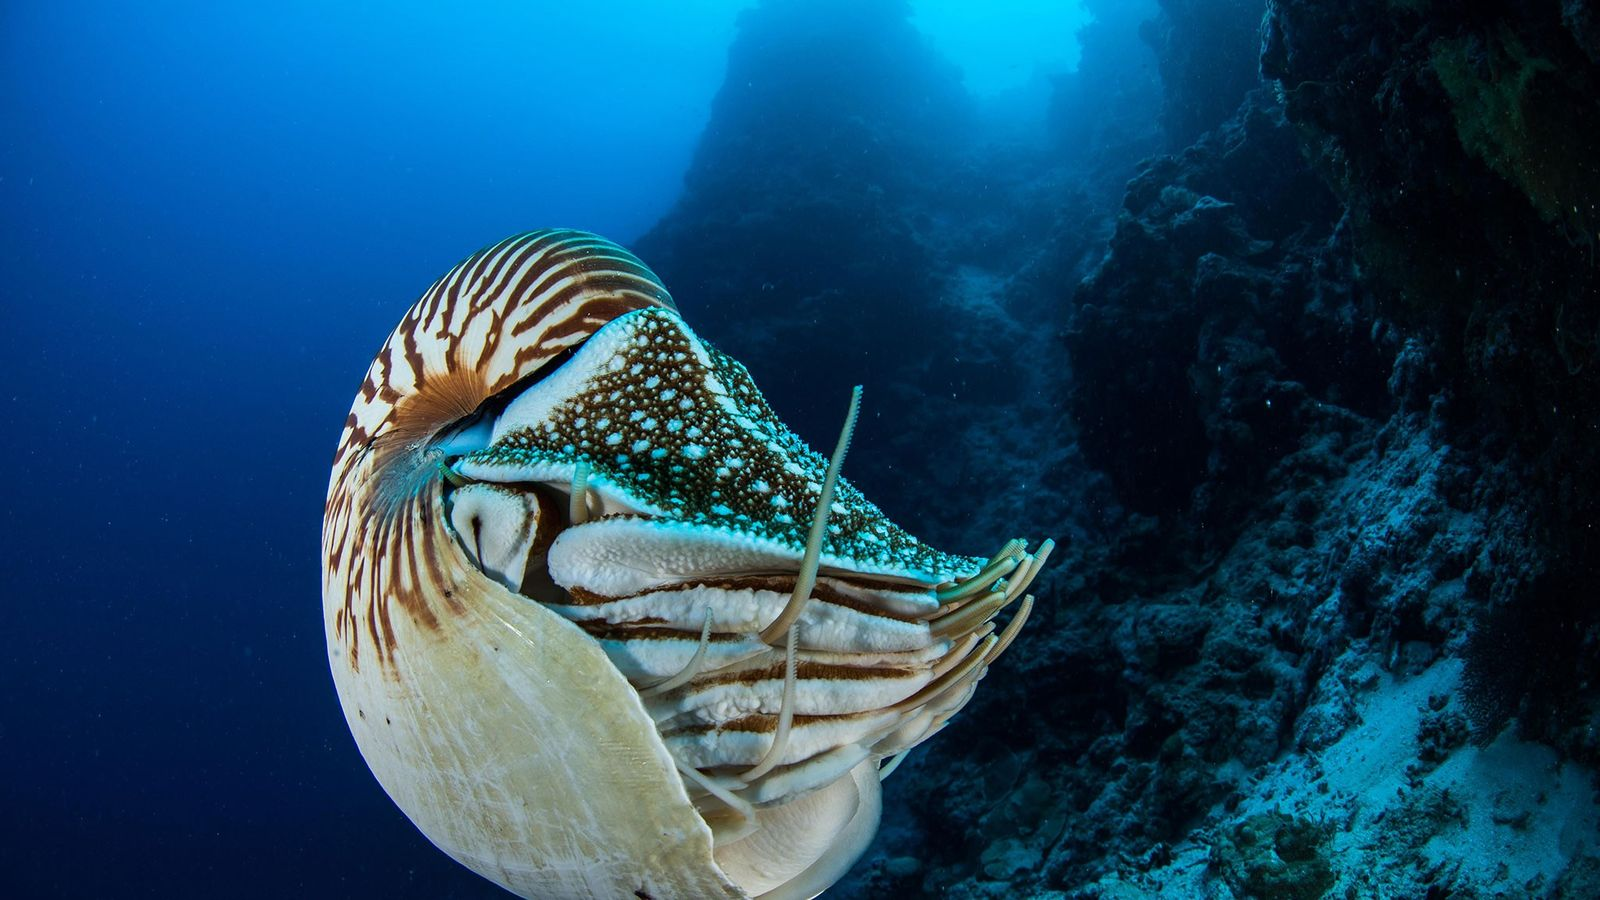 The Palau nautilus (Nautilus belauensis) occurs nowhere else on Earth, but this individual was seen by ...